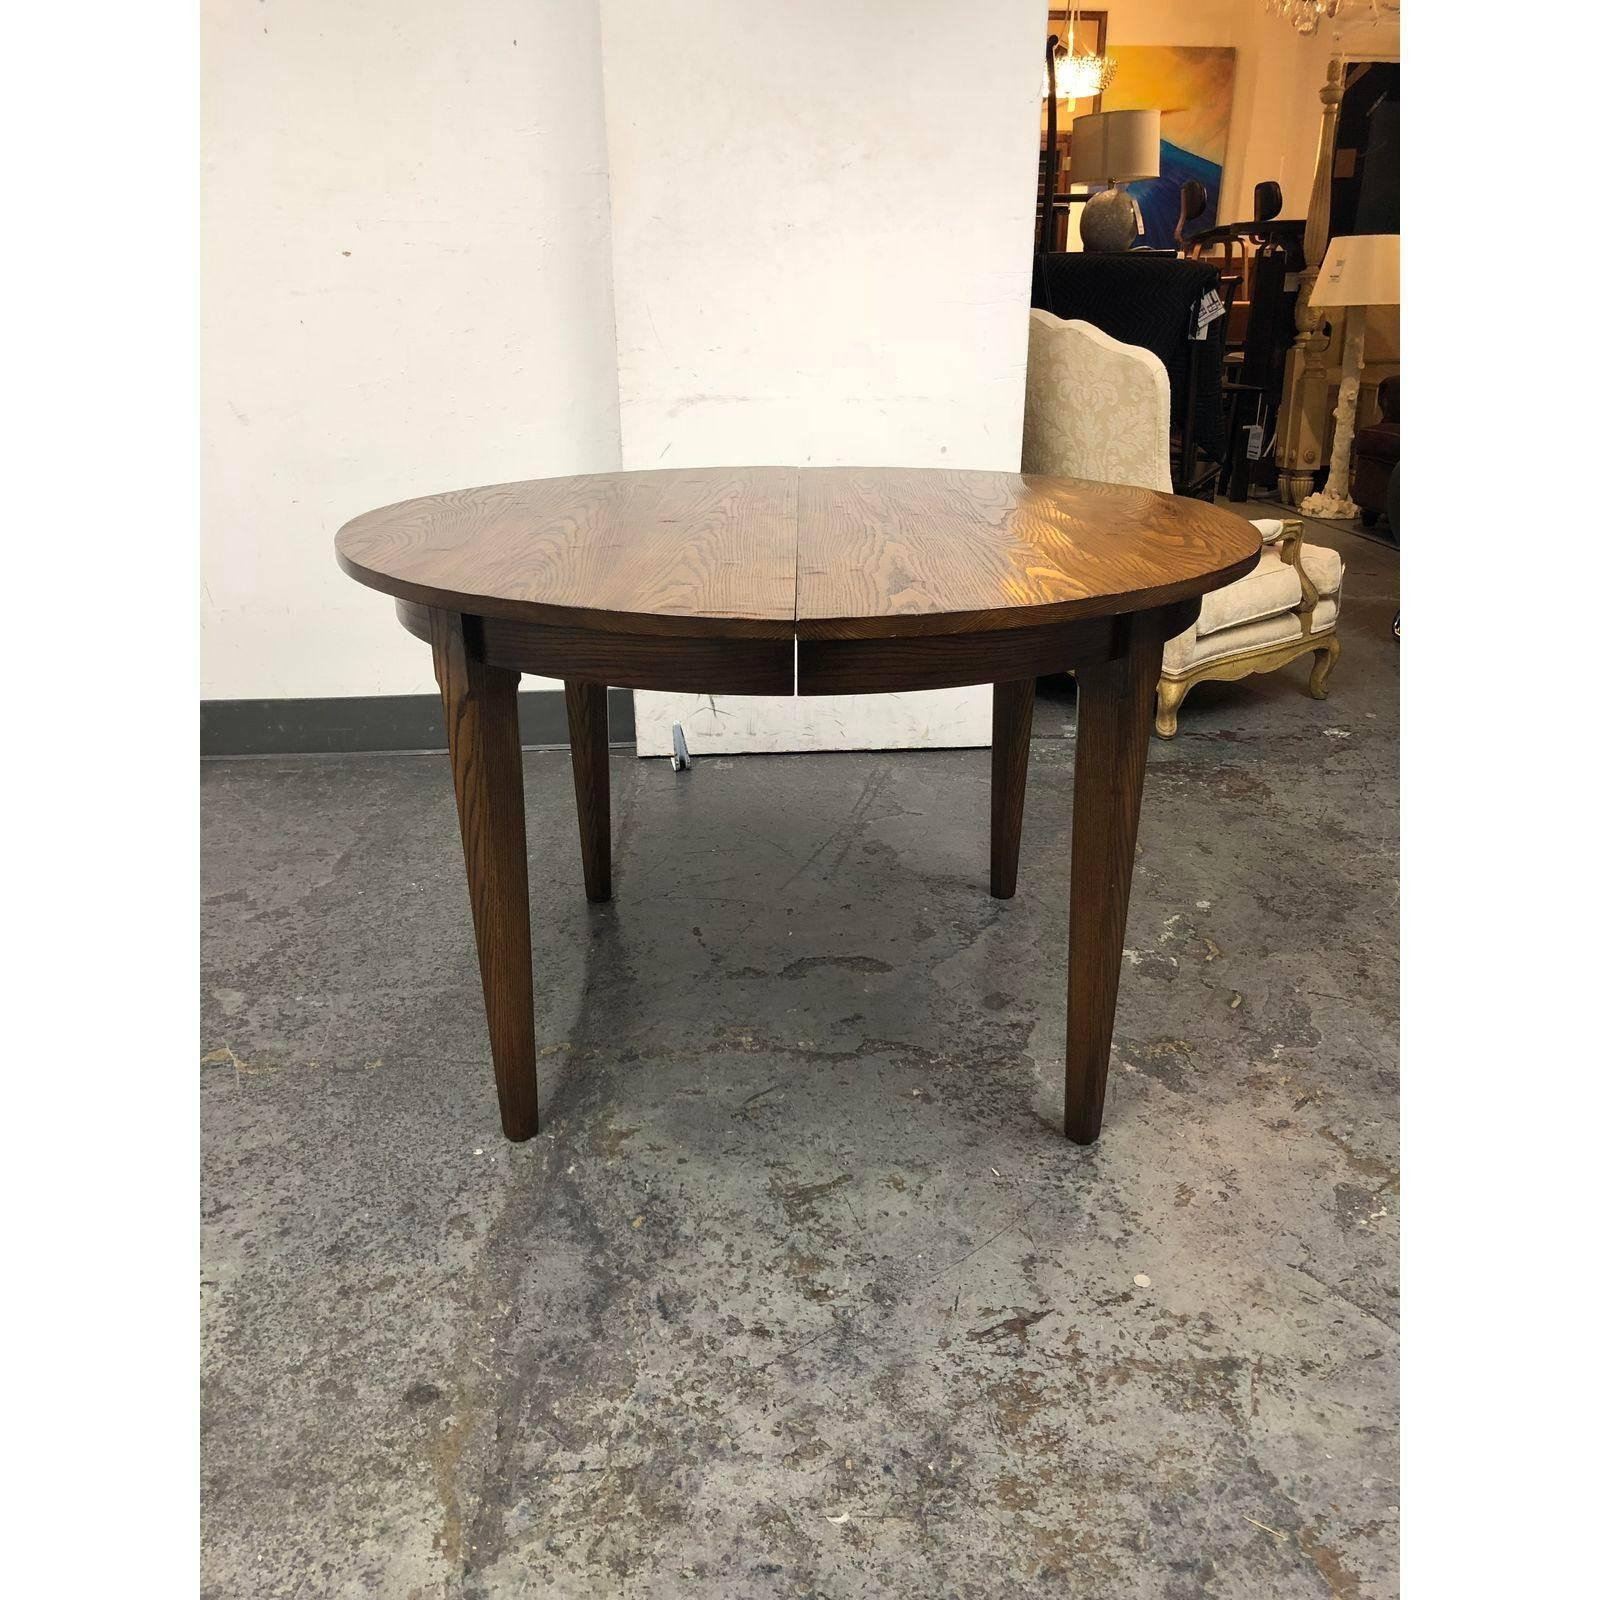 Most Popular Oak Dining Tables Regarding Yorkshire House Vermont Oak Dining Table And Four Leaves For Sale At (View 15 of 25)